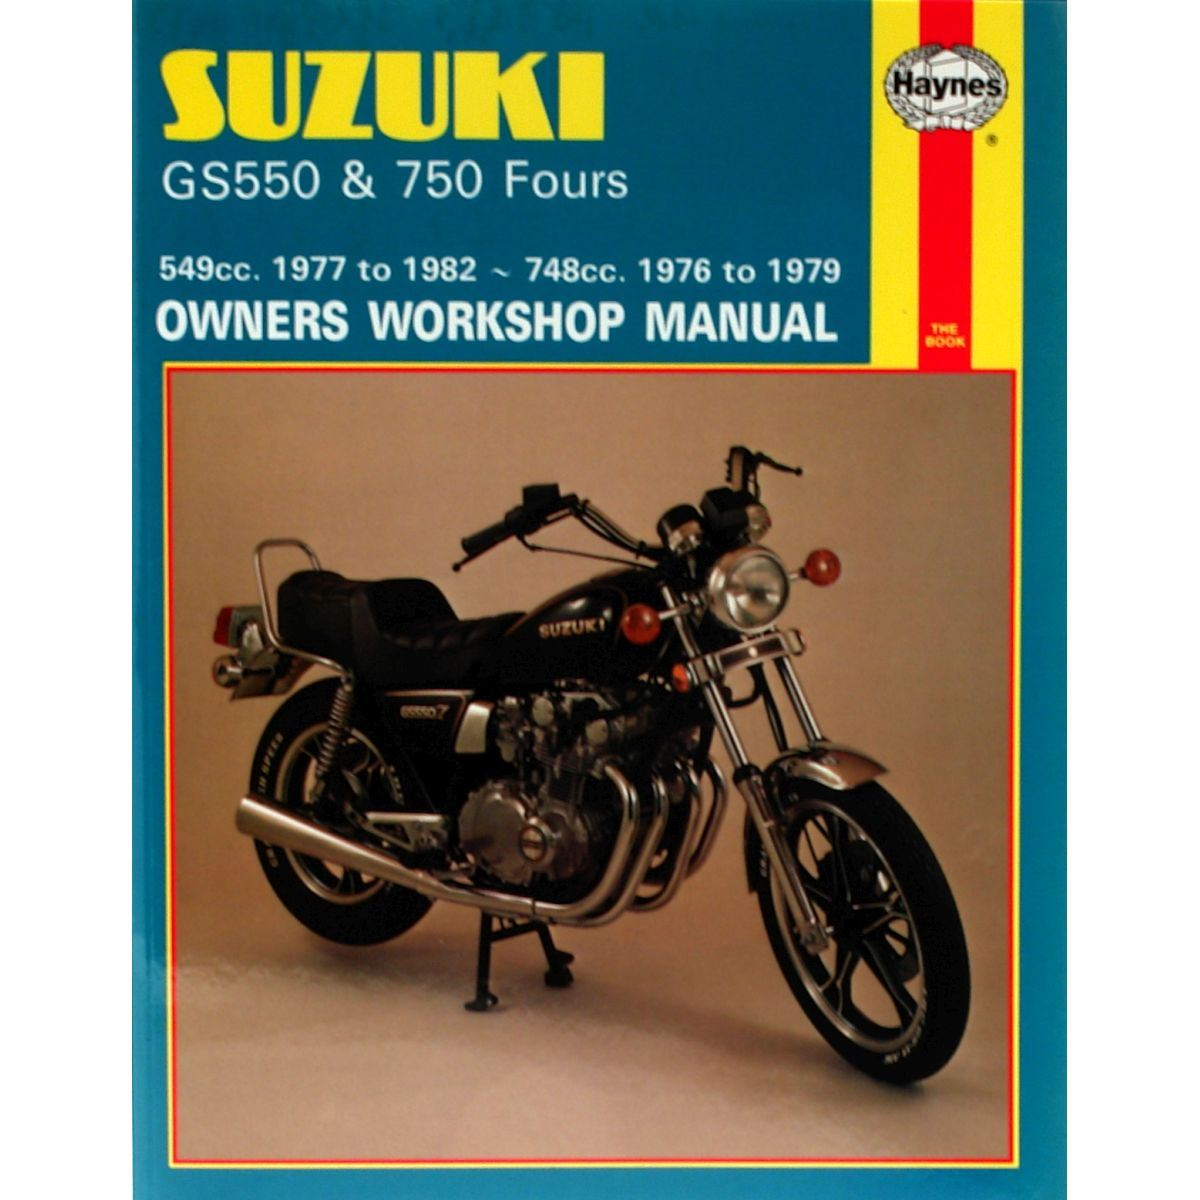 manual haynes for 1981 suzuki gs 550 mx katana ebay rh ebay co uk 2011 Suzuki Katana 1982 Suzuki Katana 550